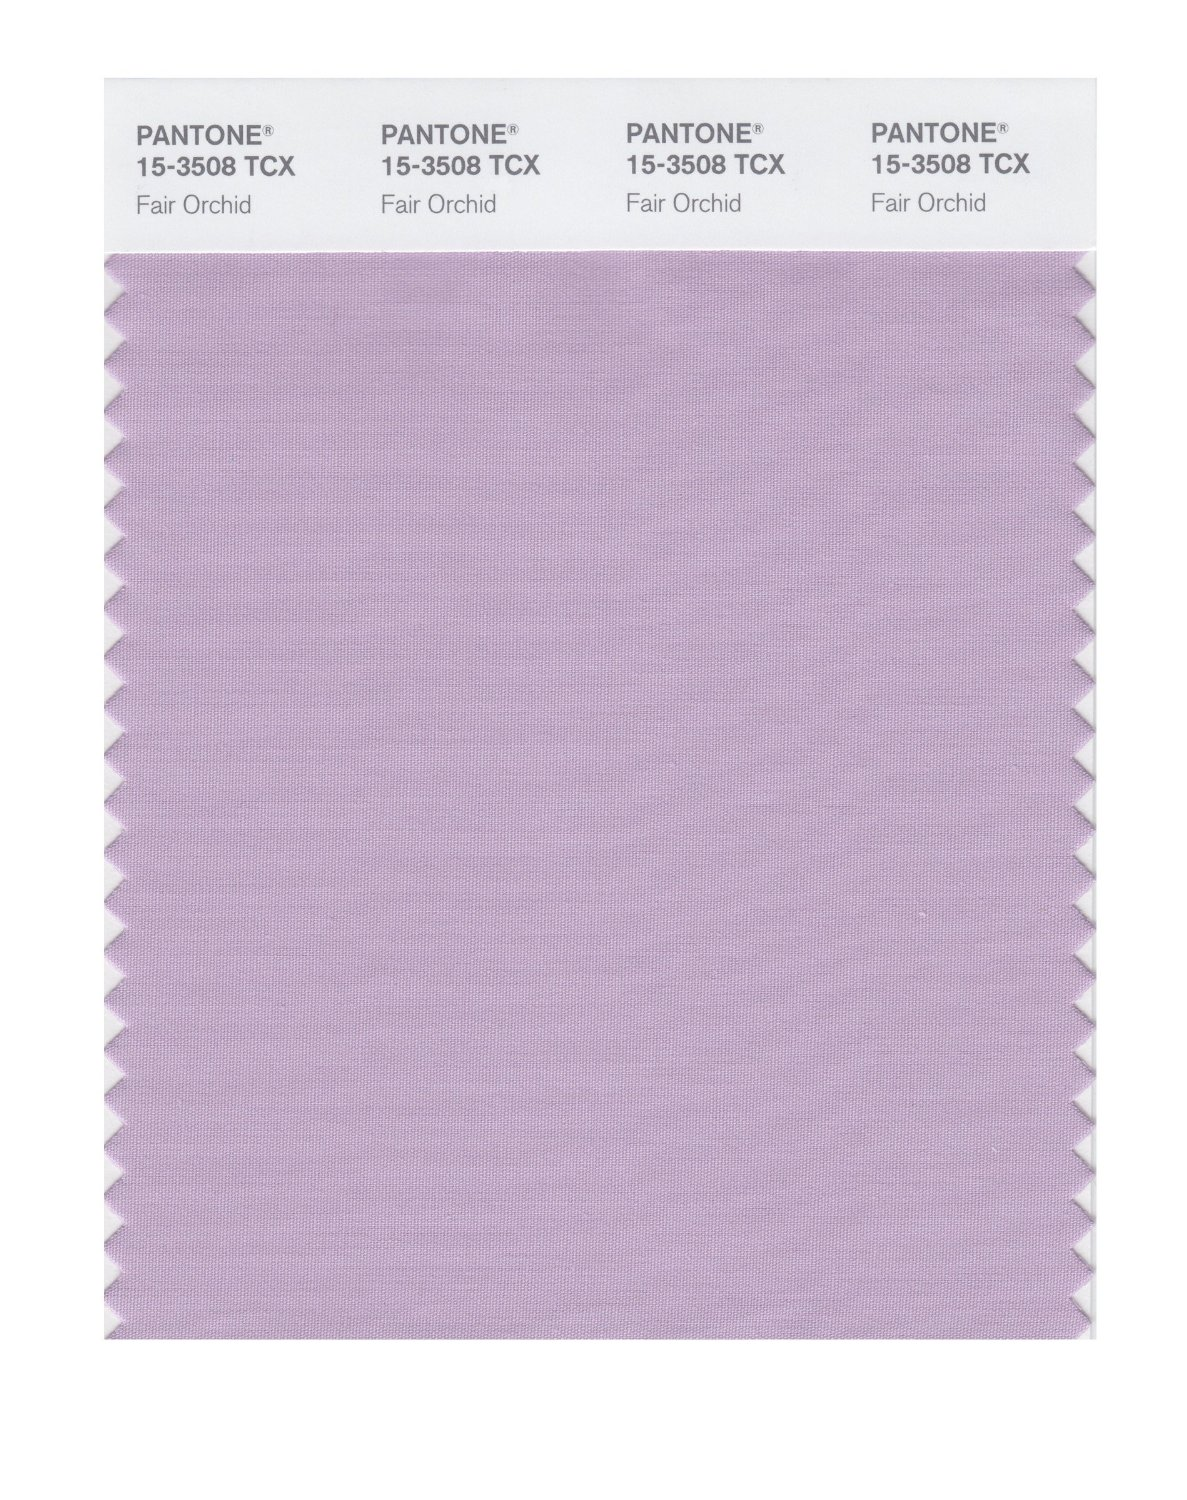 Pantone Smart Swatch 15-3508 Fair Orchid